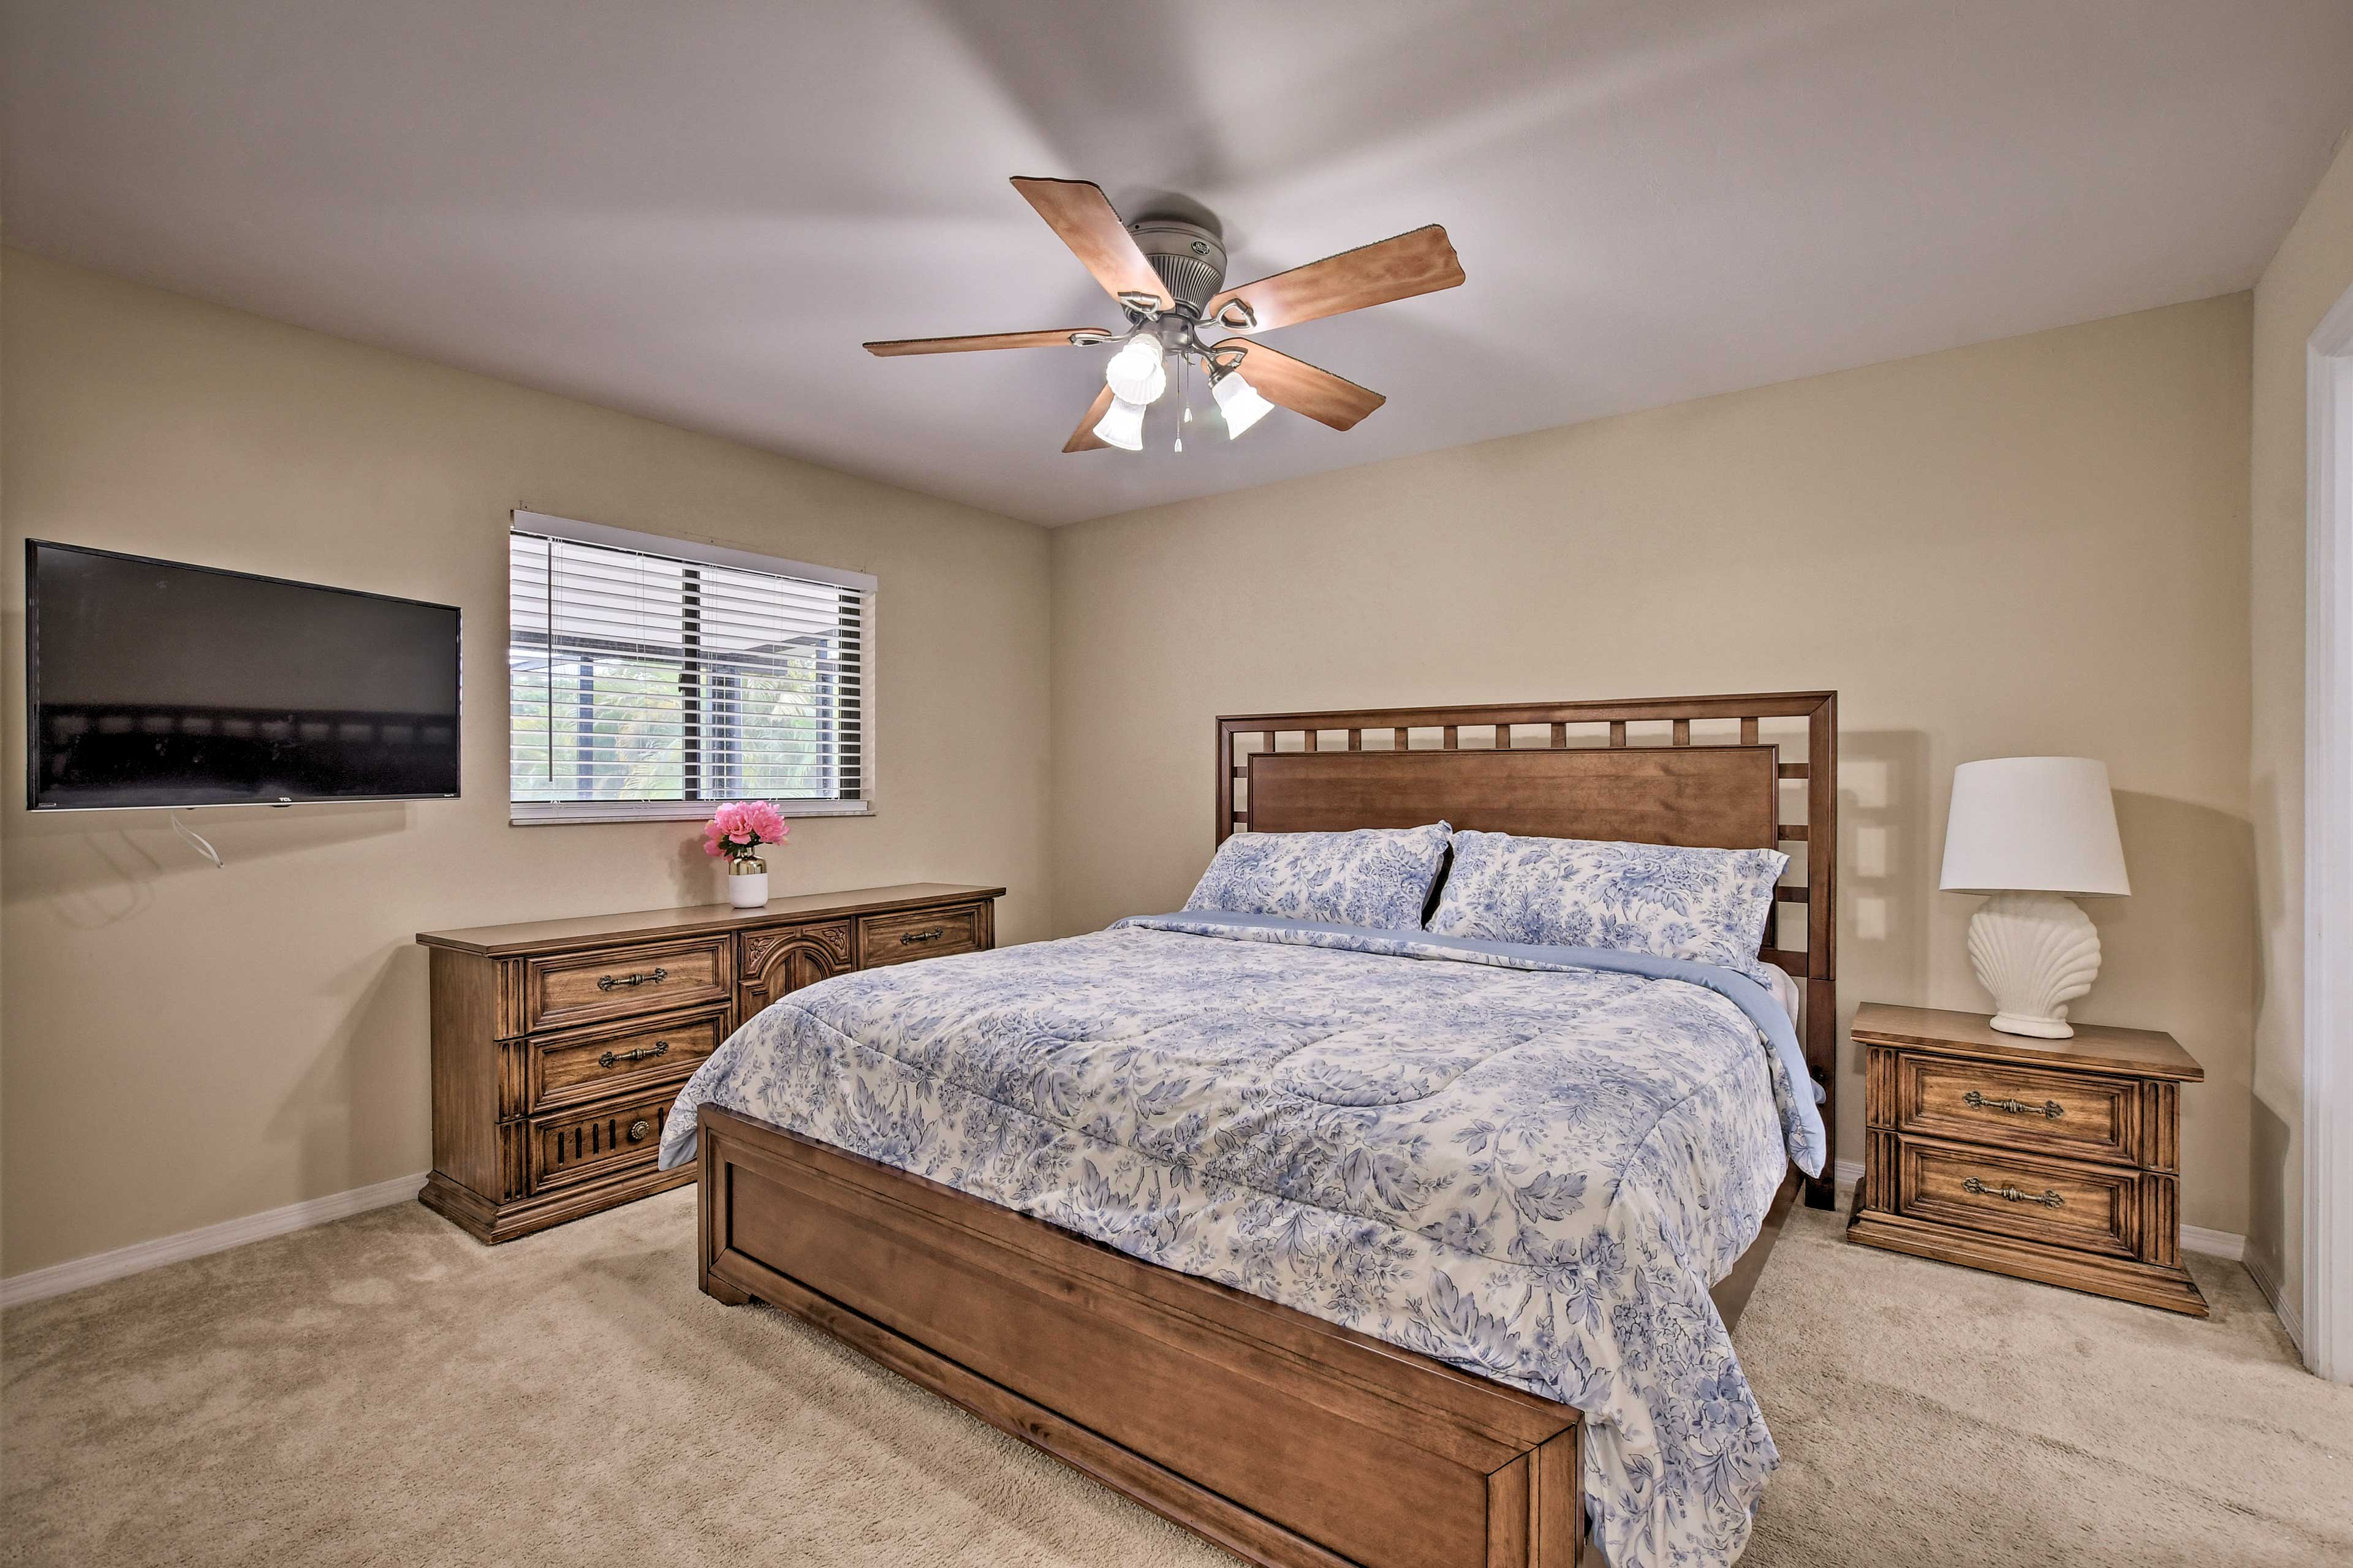 The master bedroom features a king bed and flat-screen TV.